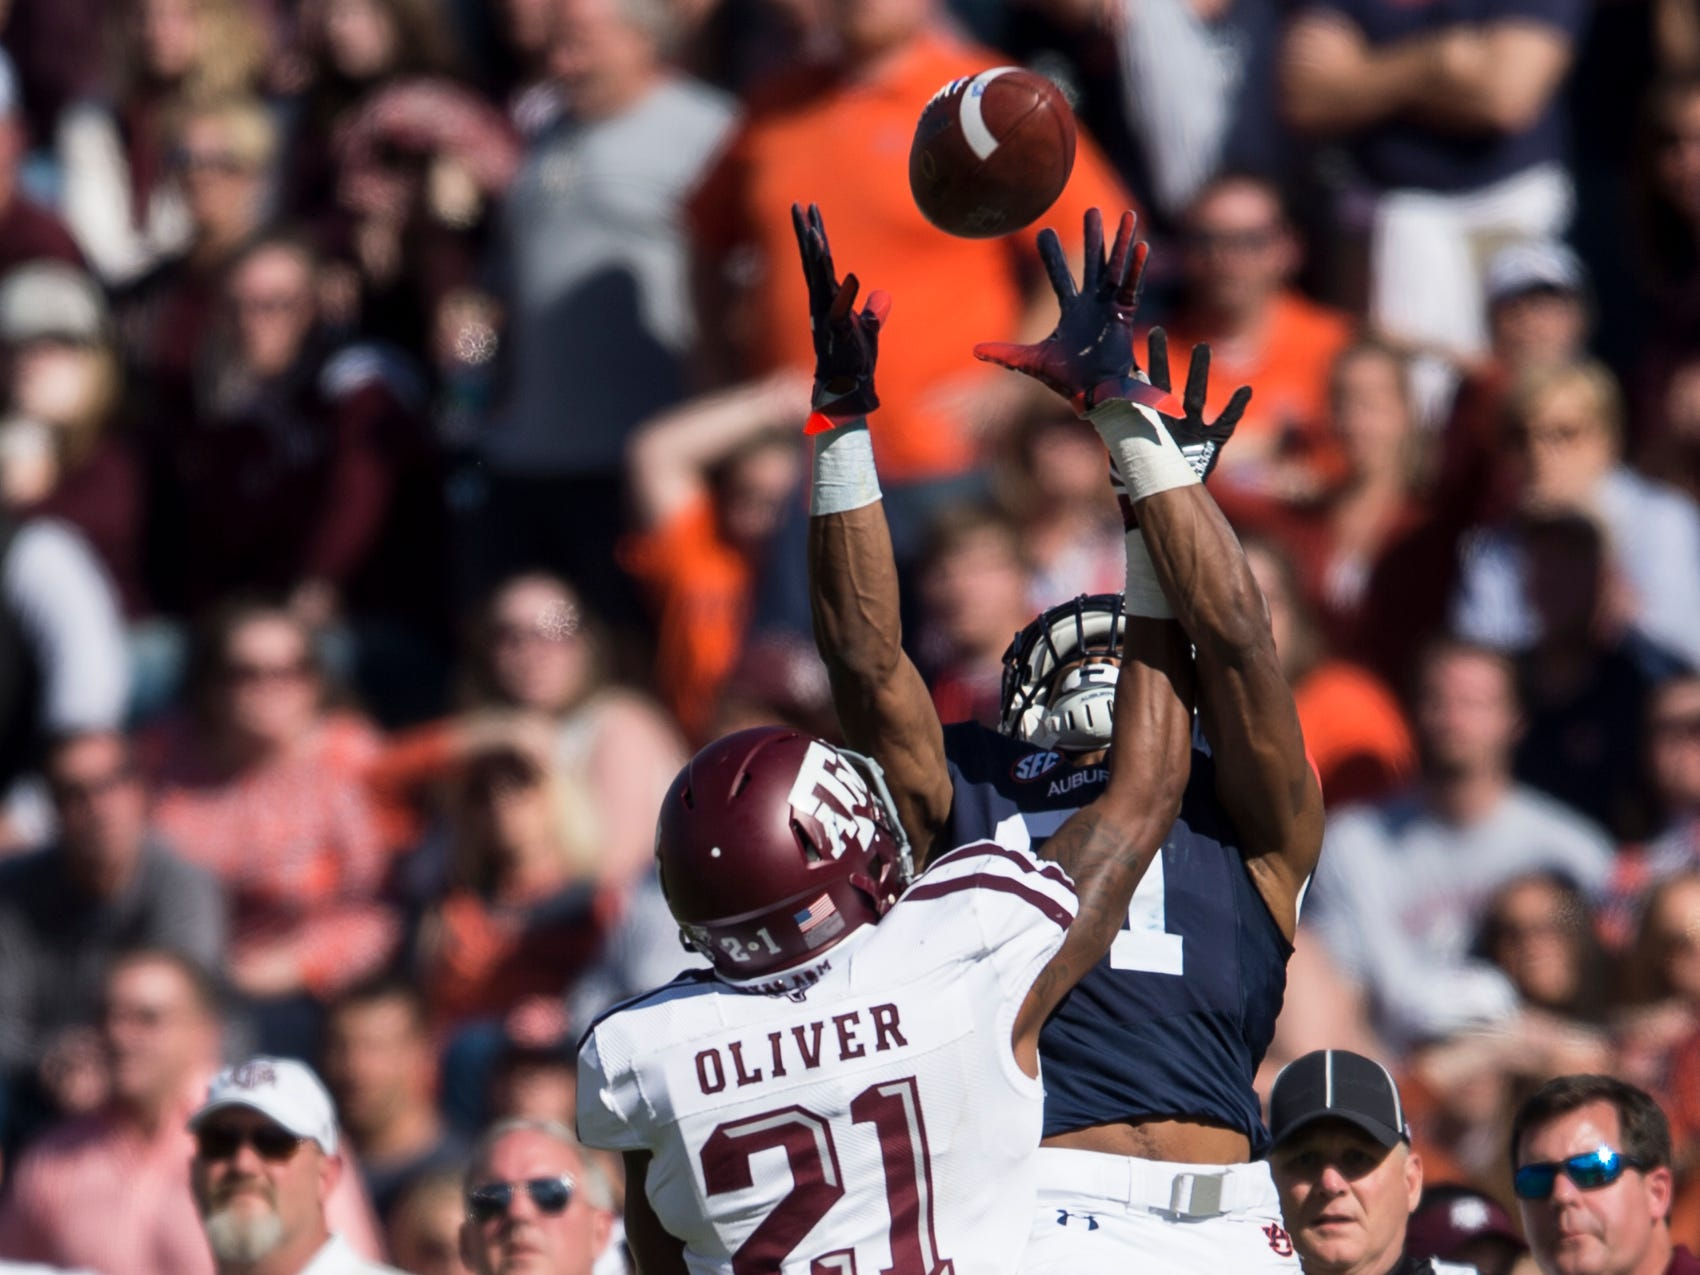 Auburn wide receiver Darius Slayton (81) attempts to catch a pass broken up by Texas A&M defensive back Charles Oliver (21) at Jordan-Hare Stadium on Saturday, Nov. 3, 2018. Auburn defeated Texas A&M 28-24.